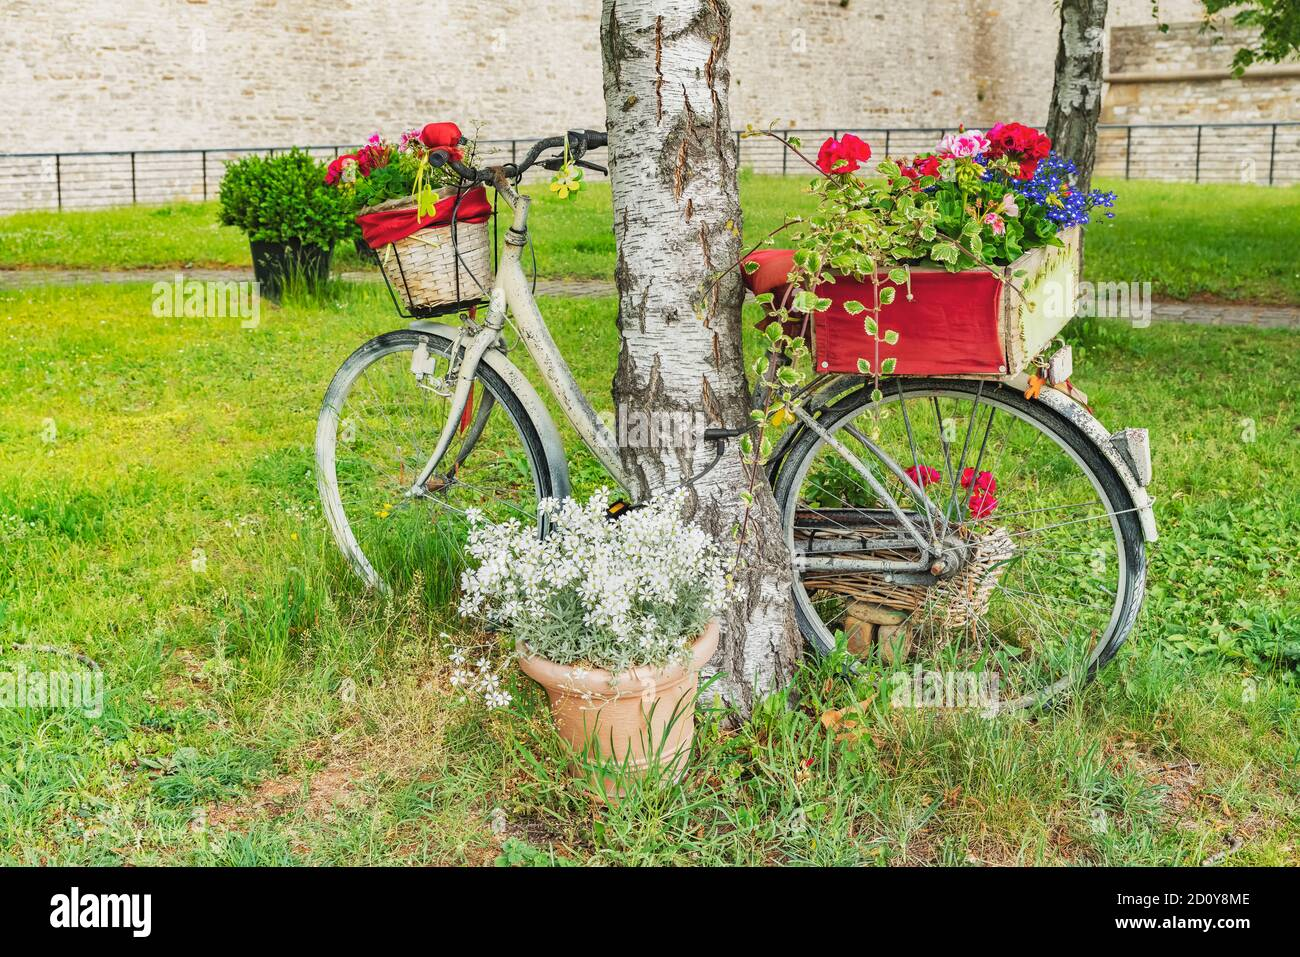 A bicycle decorated with flowers is leaning against a tree. The bicycle is on the Petersberg in Erfurt, capital of Thuringia, Germany, Europe Stock Photo